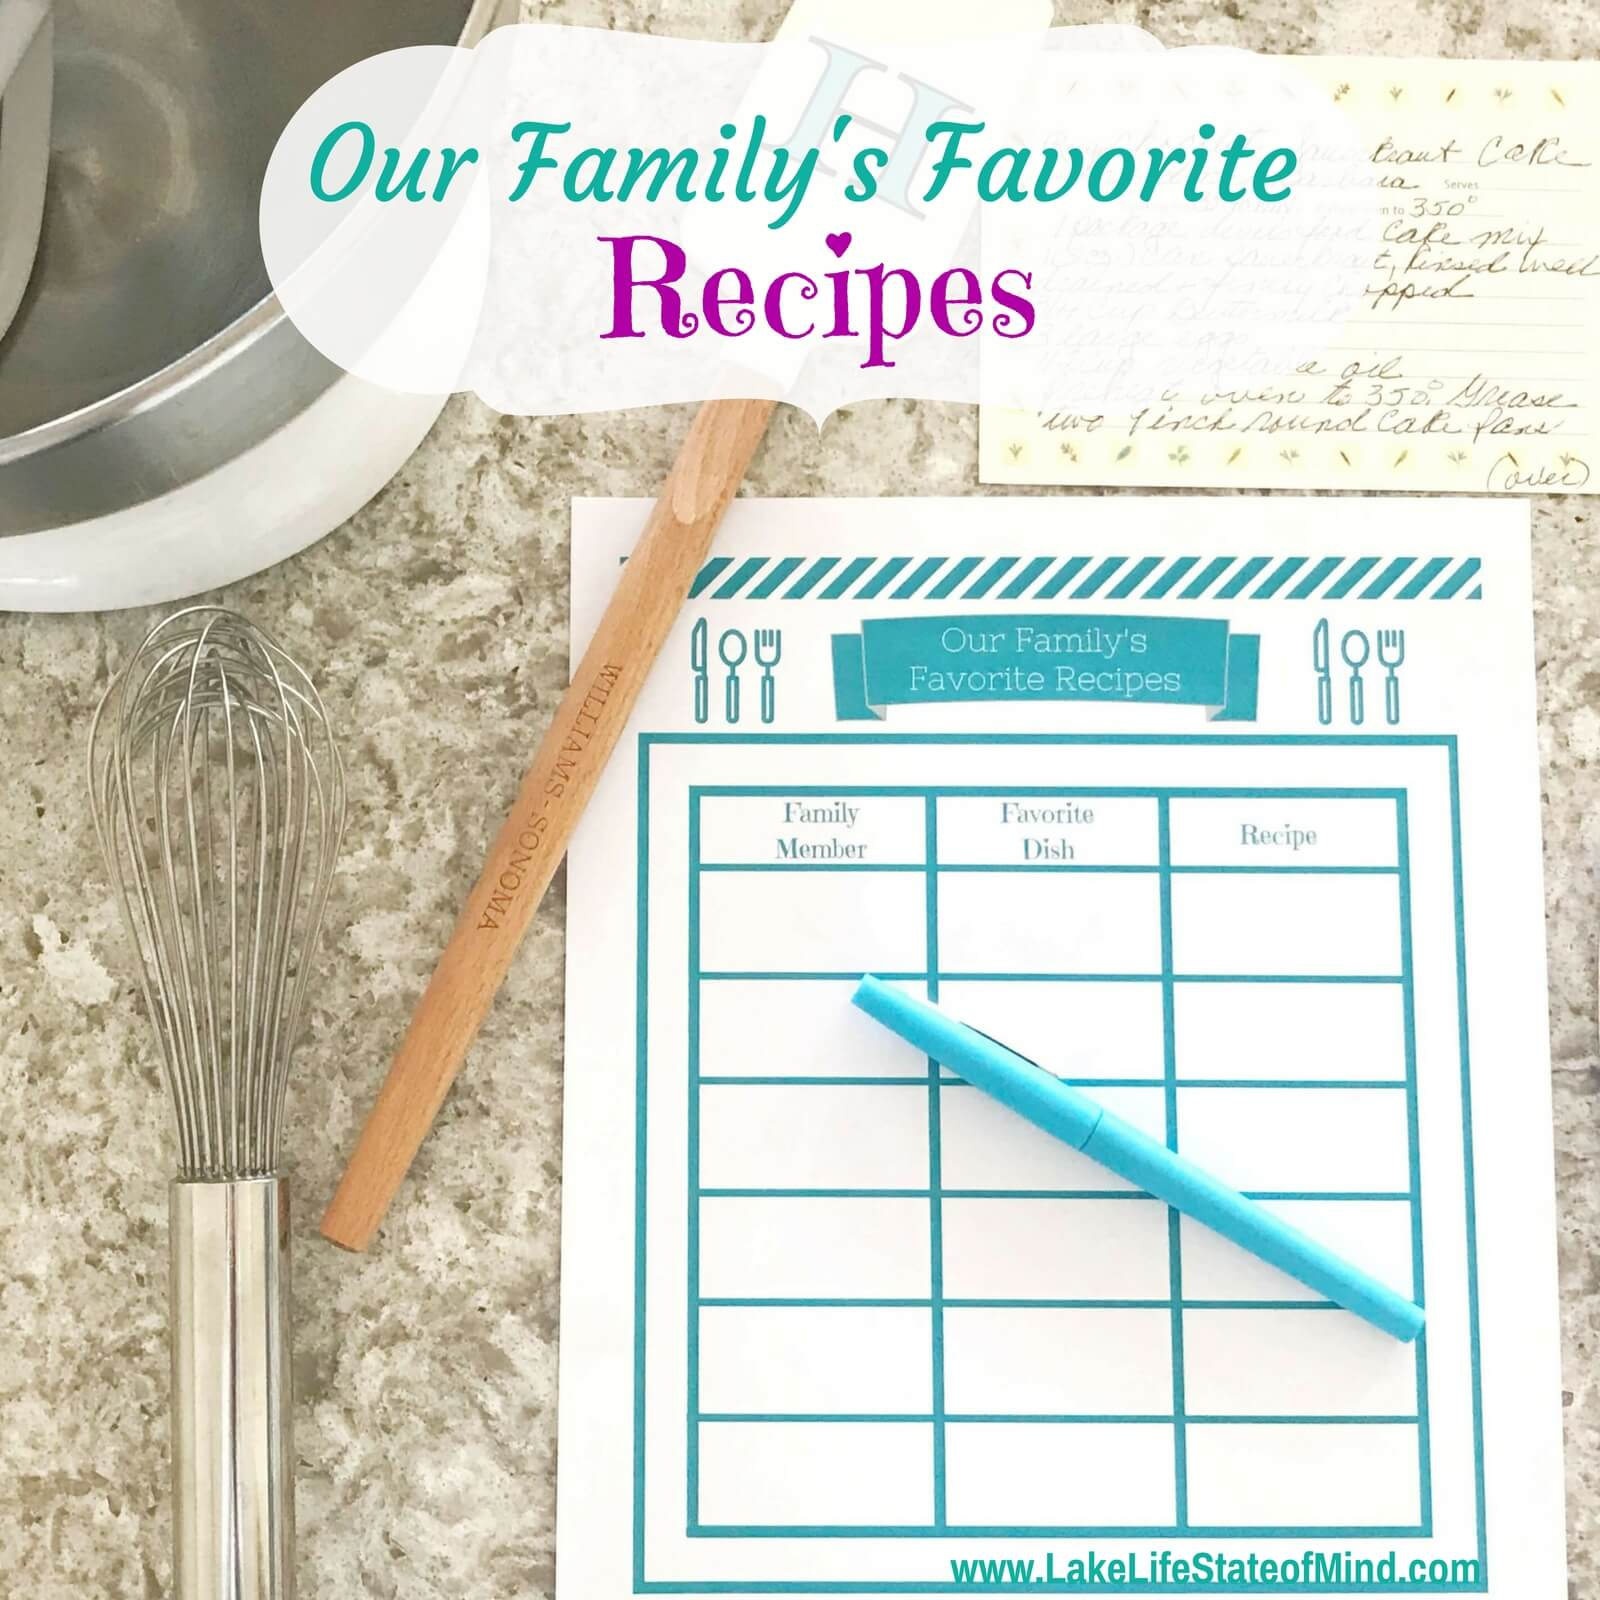 Why is it important to know your family's favorite recipes?